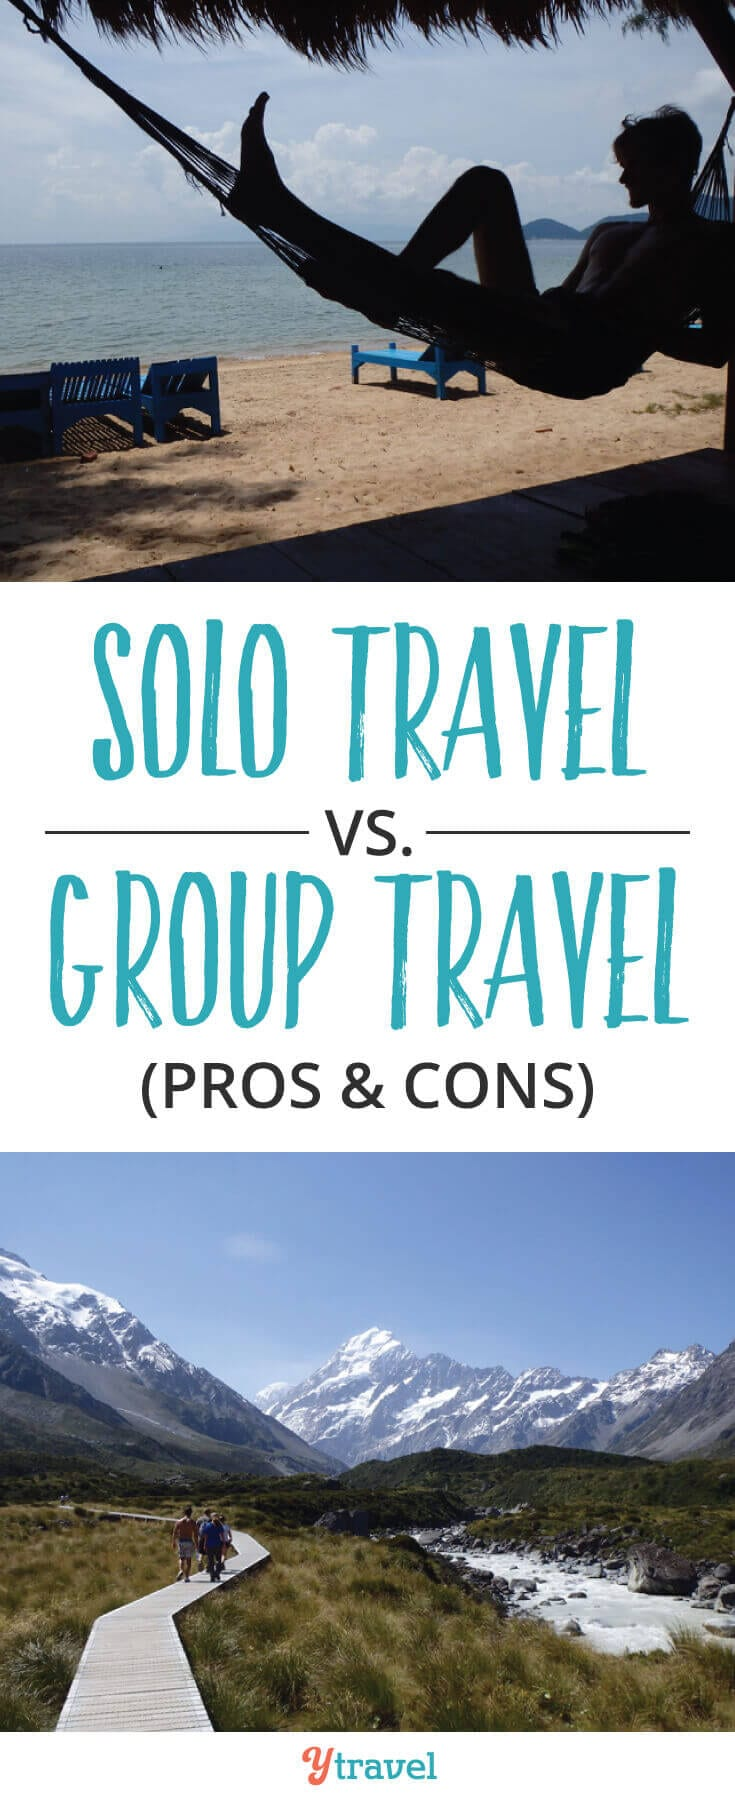 Solo Travel vs Group Travel? Should you travel solo or in as group? The decision to travel solo or in a group can be one that's particularly tough, especially for a first time traveler. Learn the PROS and CONS of each.